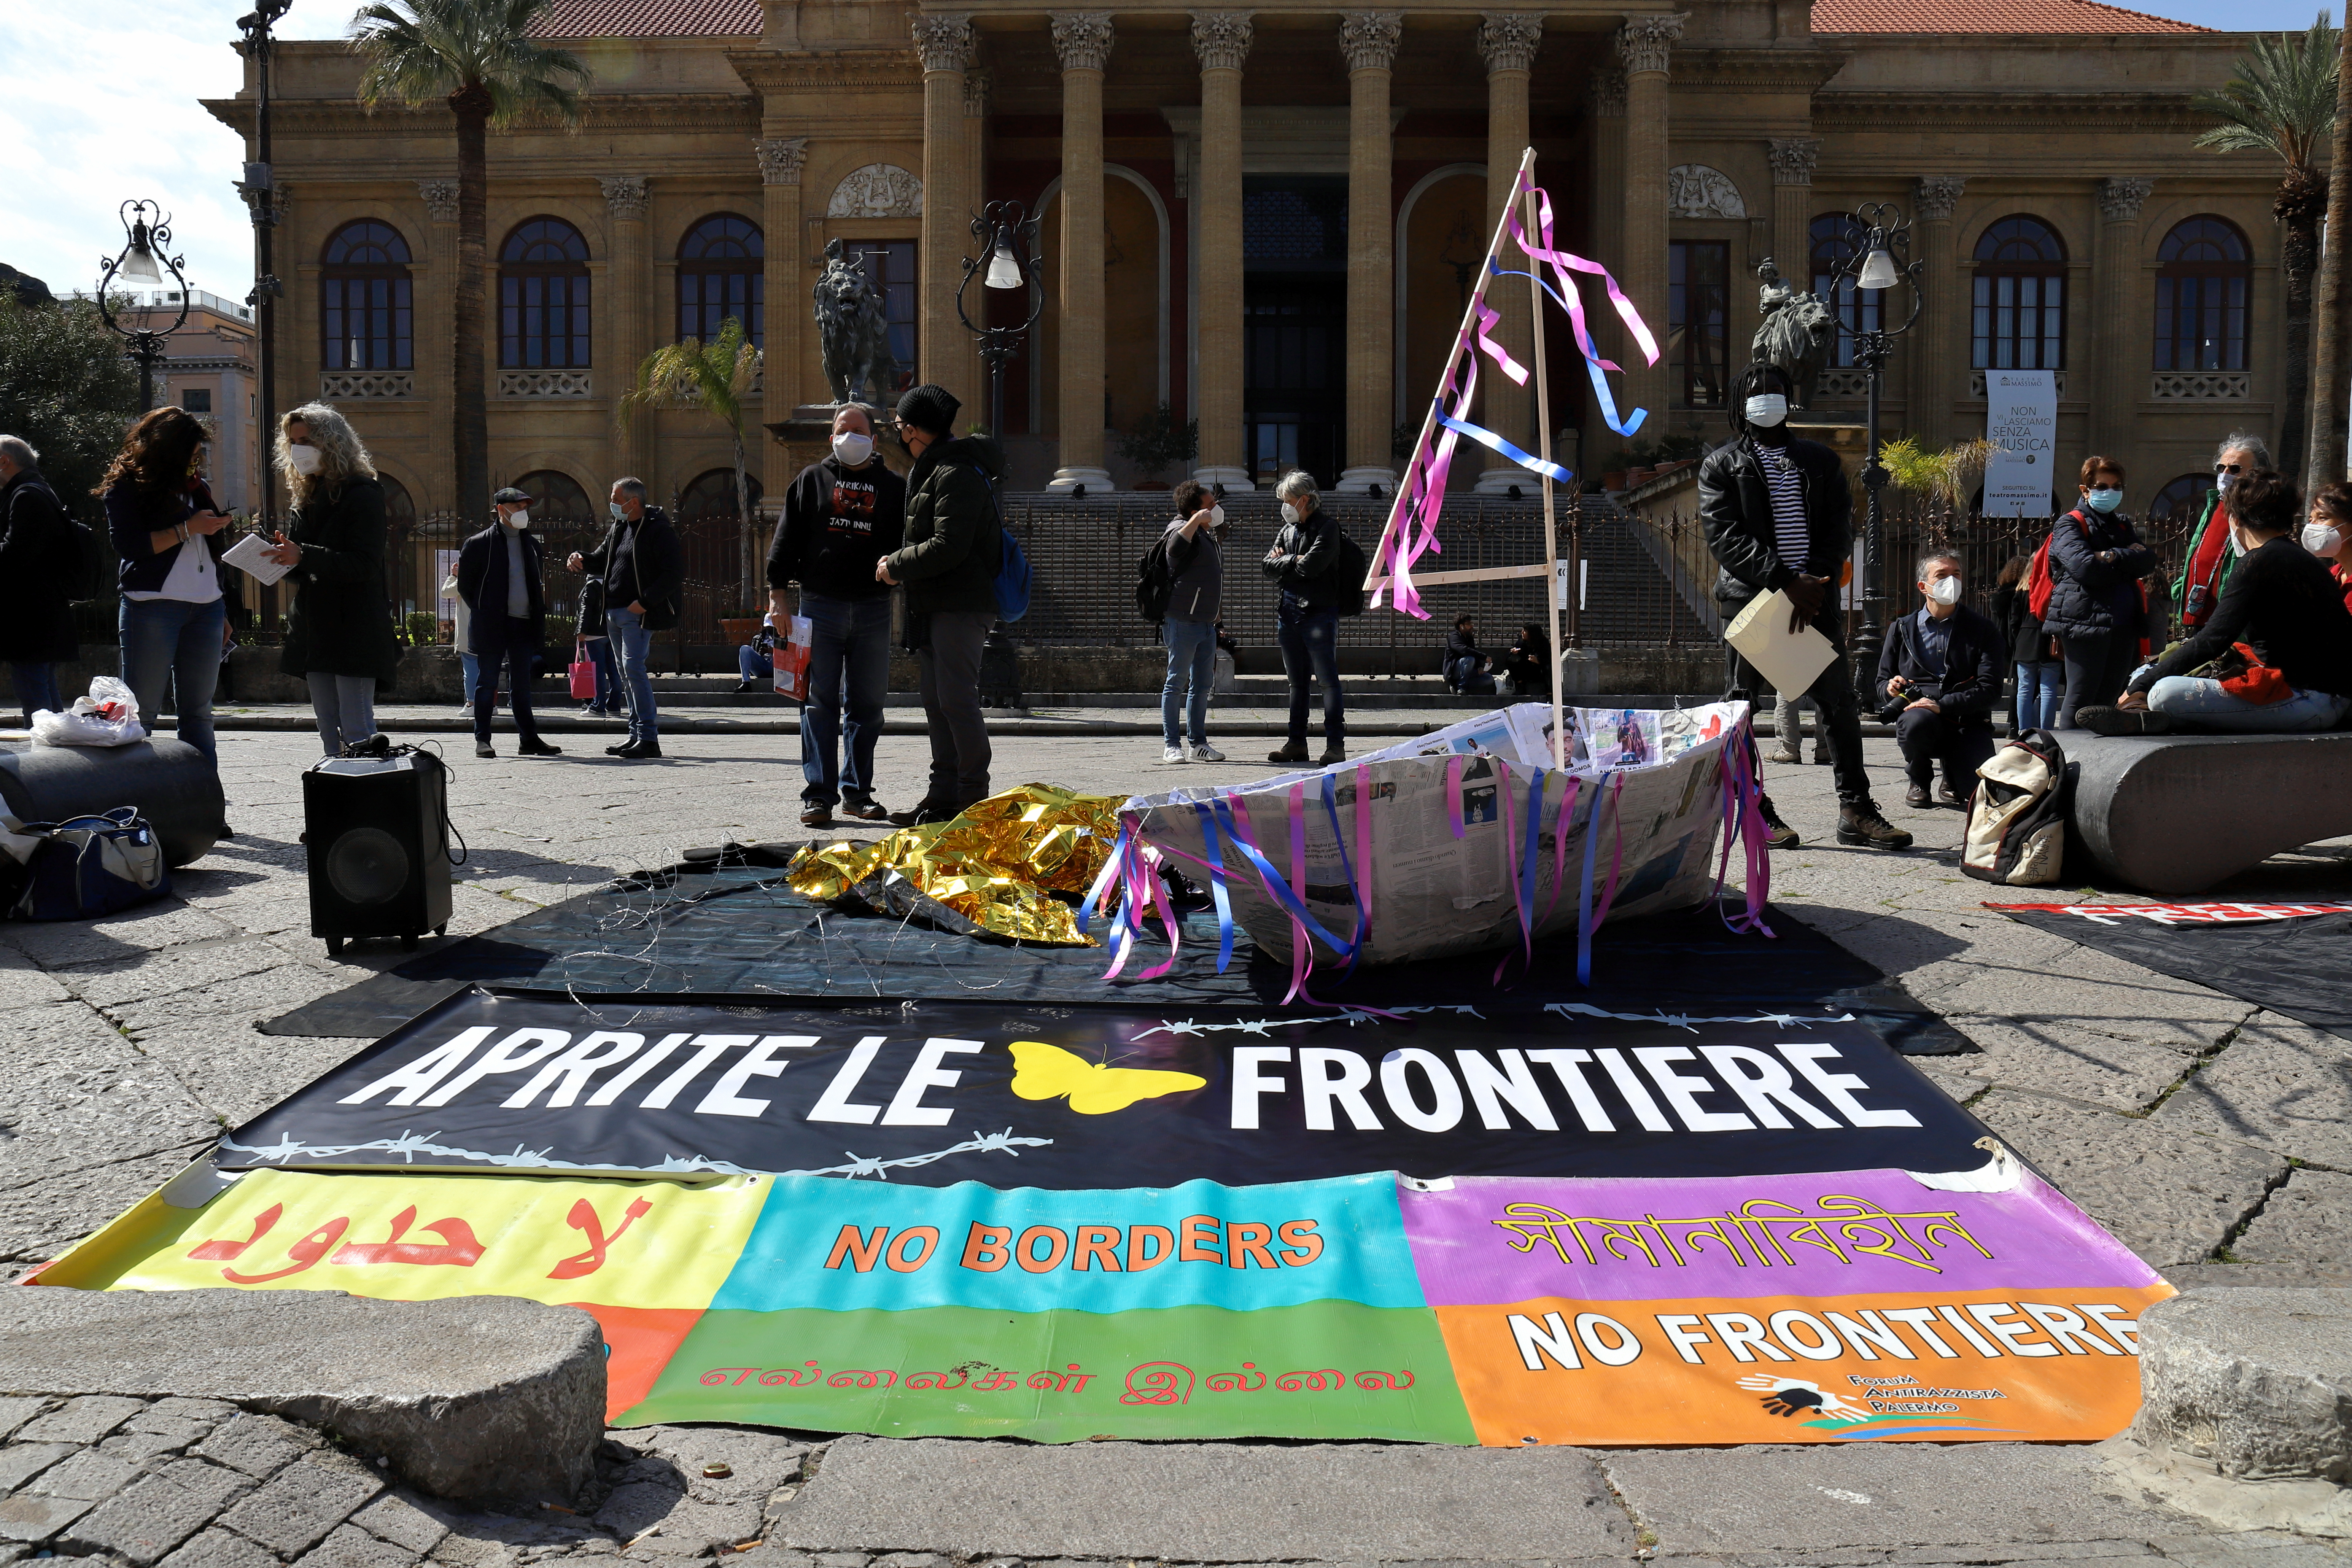 Open the frontiers - Aprite le frontiere